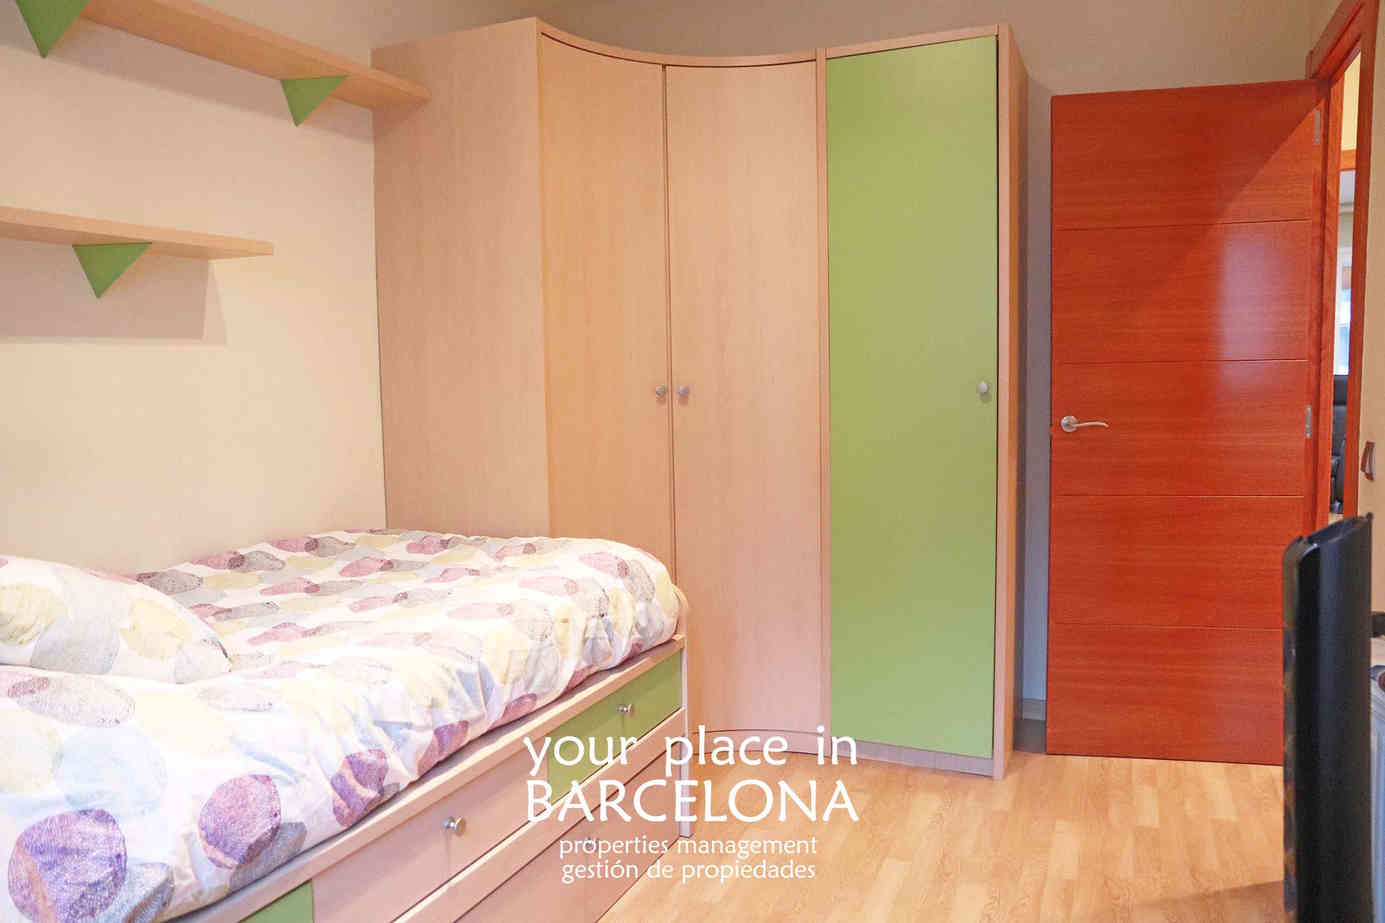 20 copia.JPGyour-place-in-barcelona-alqu